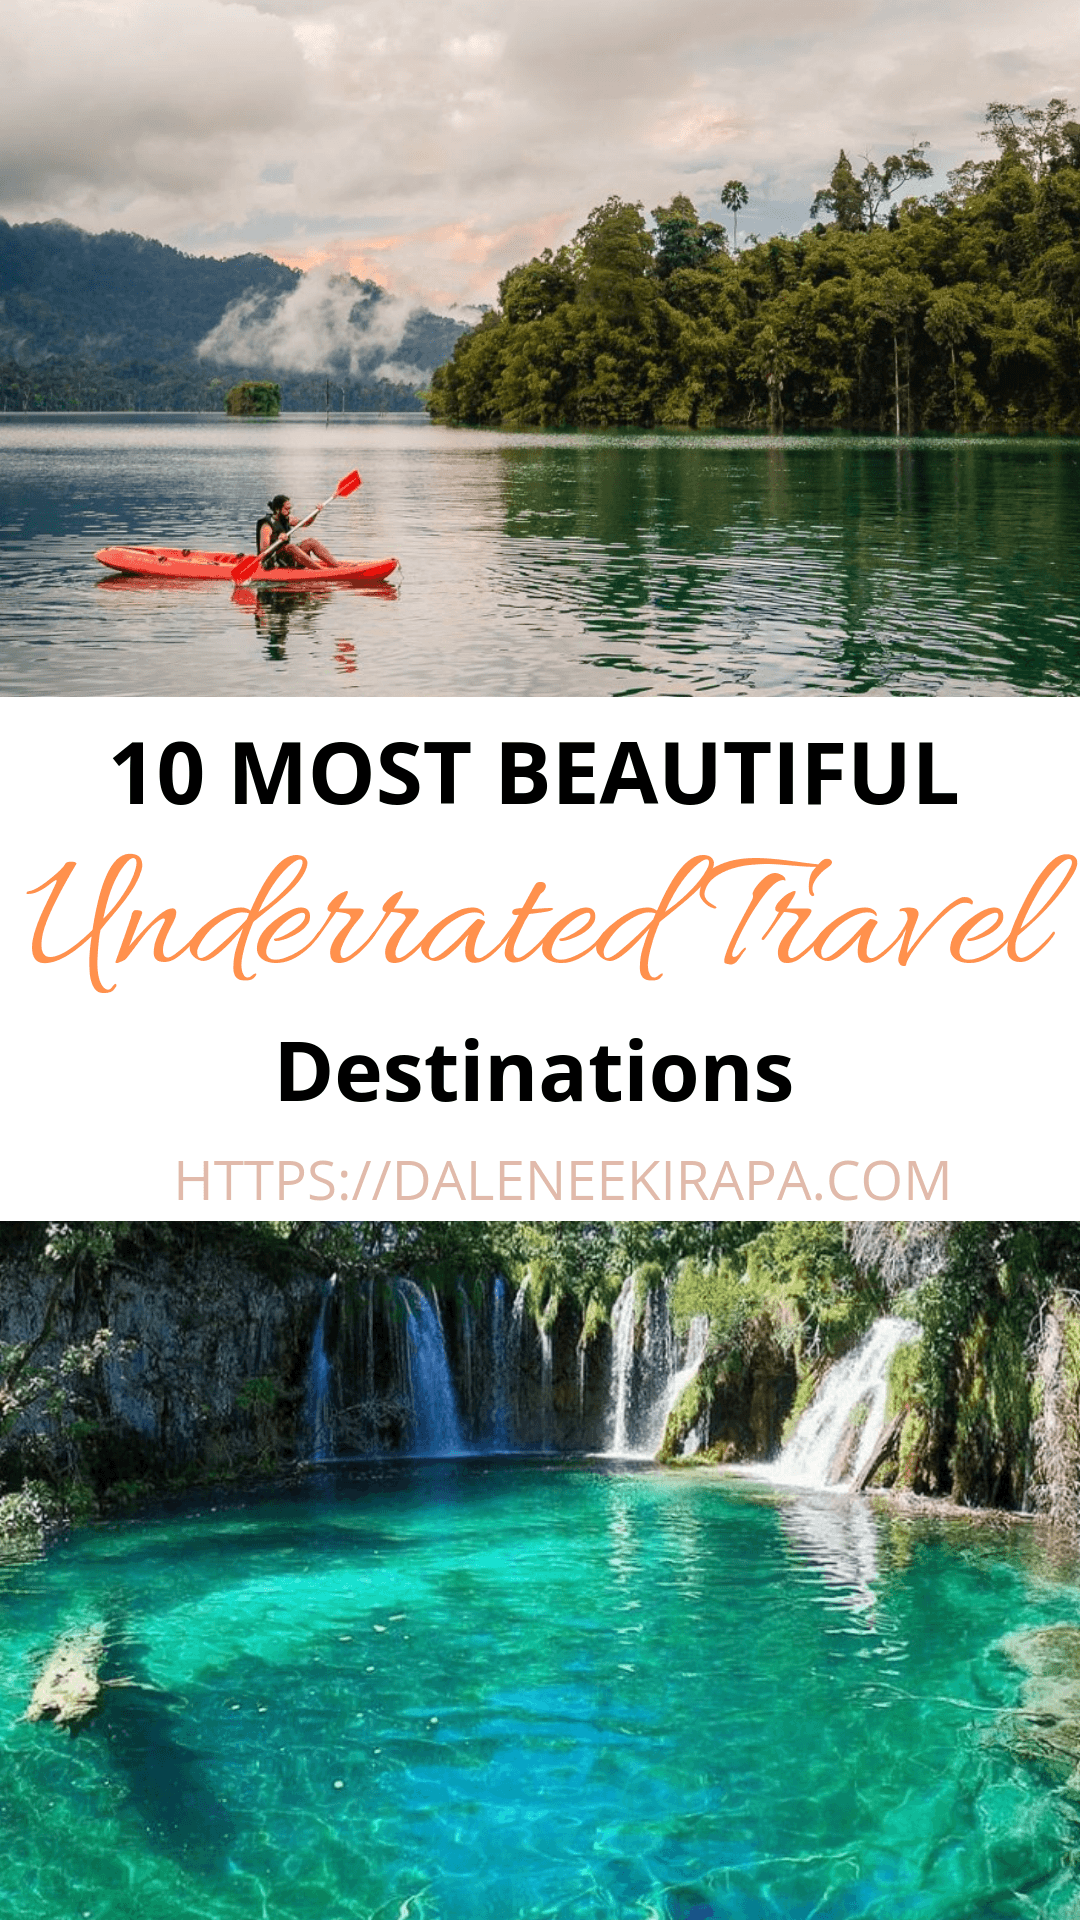 10 Most Underrated Travel Destinations That Are Simply